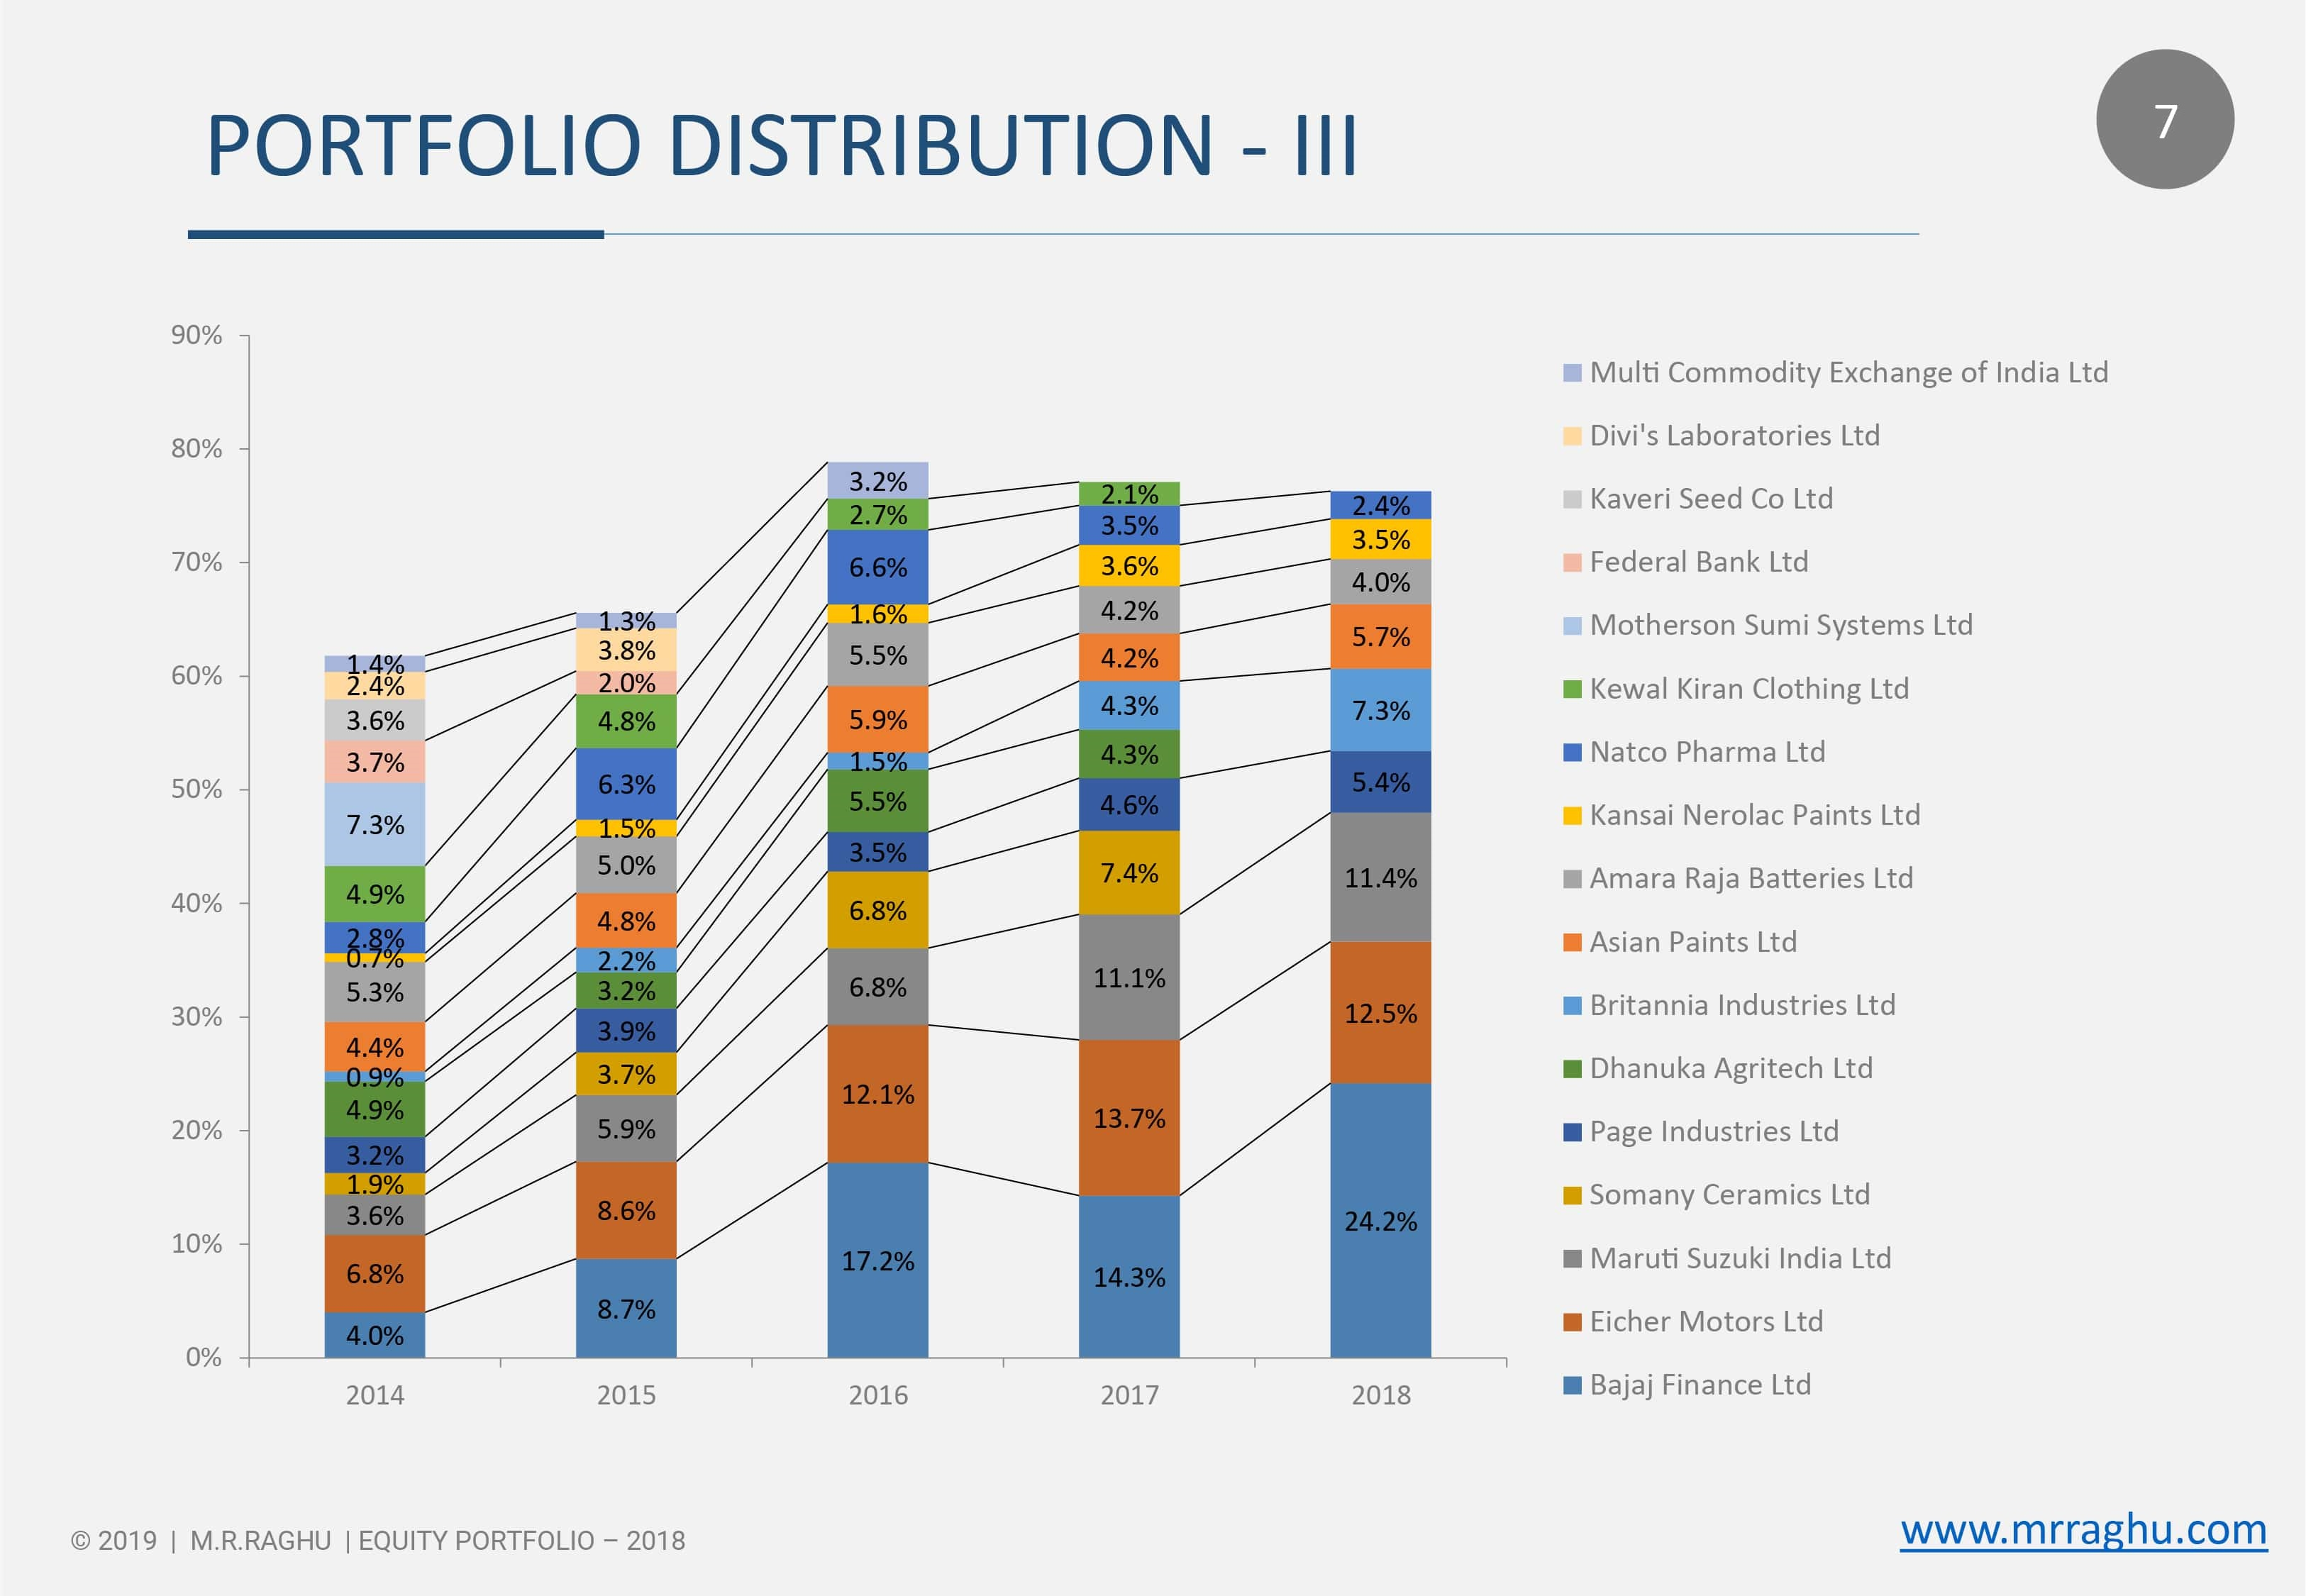 PORTFOLIO DISTRIBUTION - III - 2018